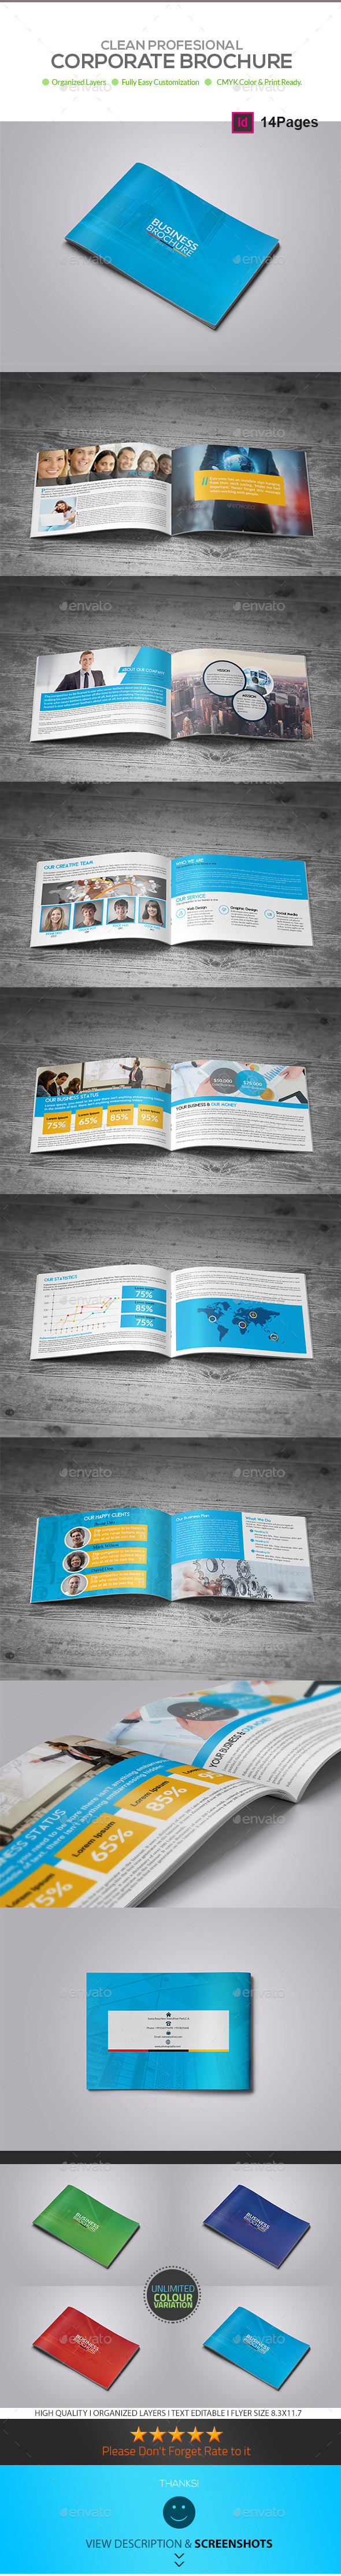 GraphicRiver Business Brochure Template 14 Pages 9020516